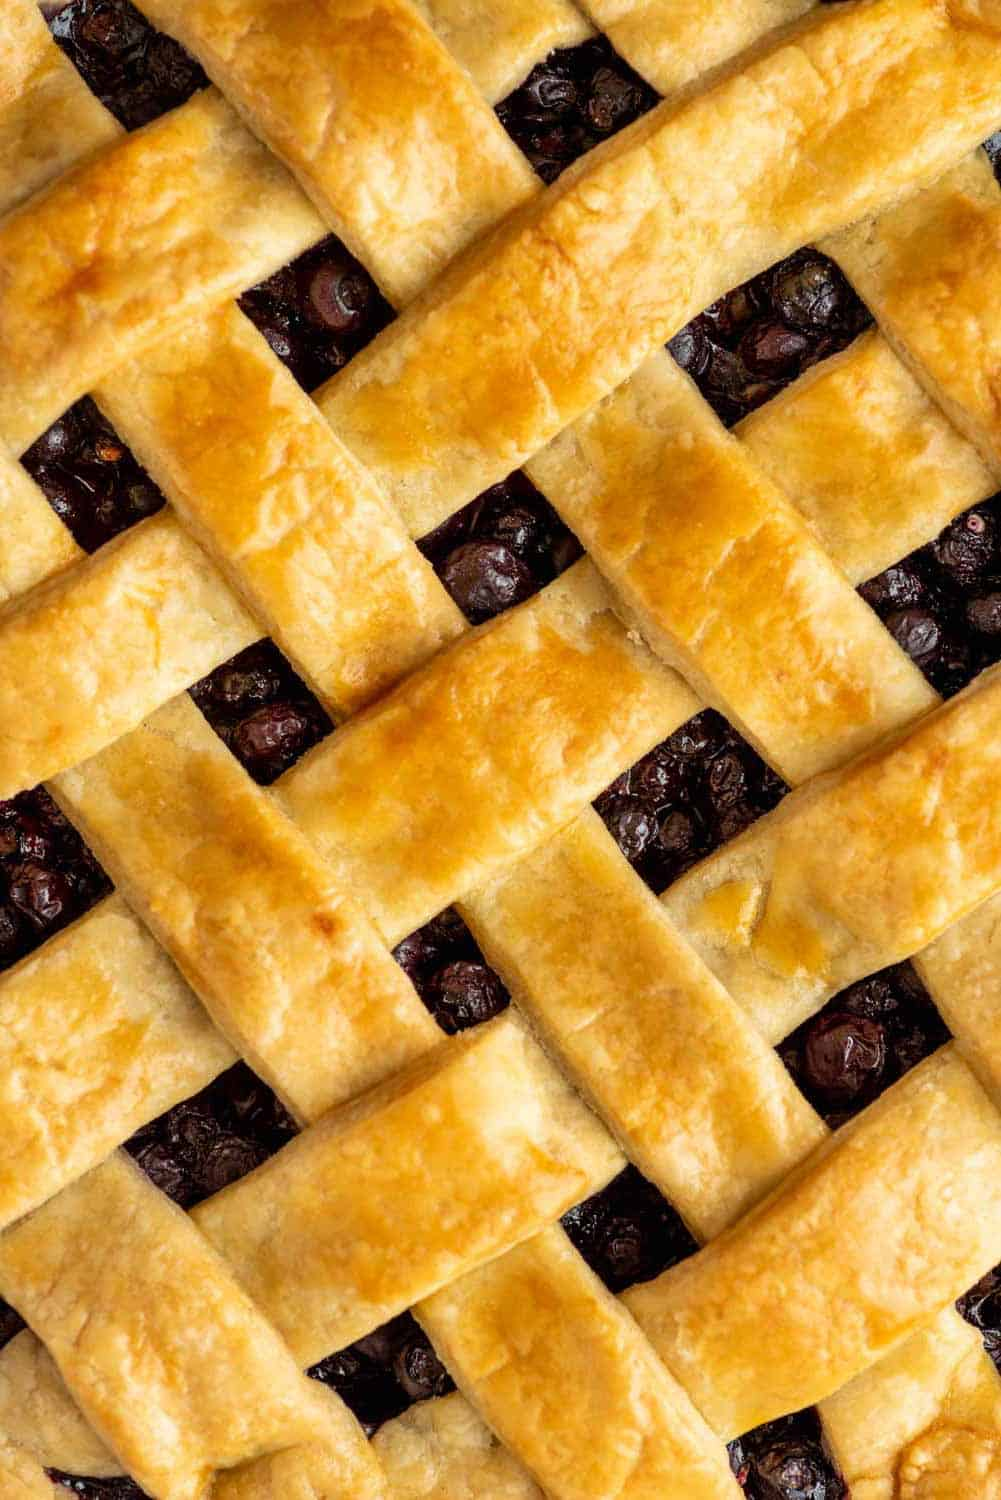 Close up shot of lattice top of a baked pie